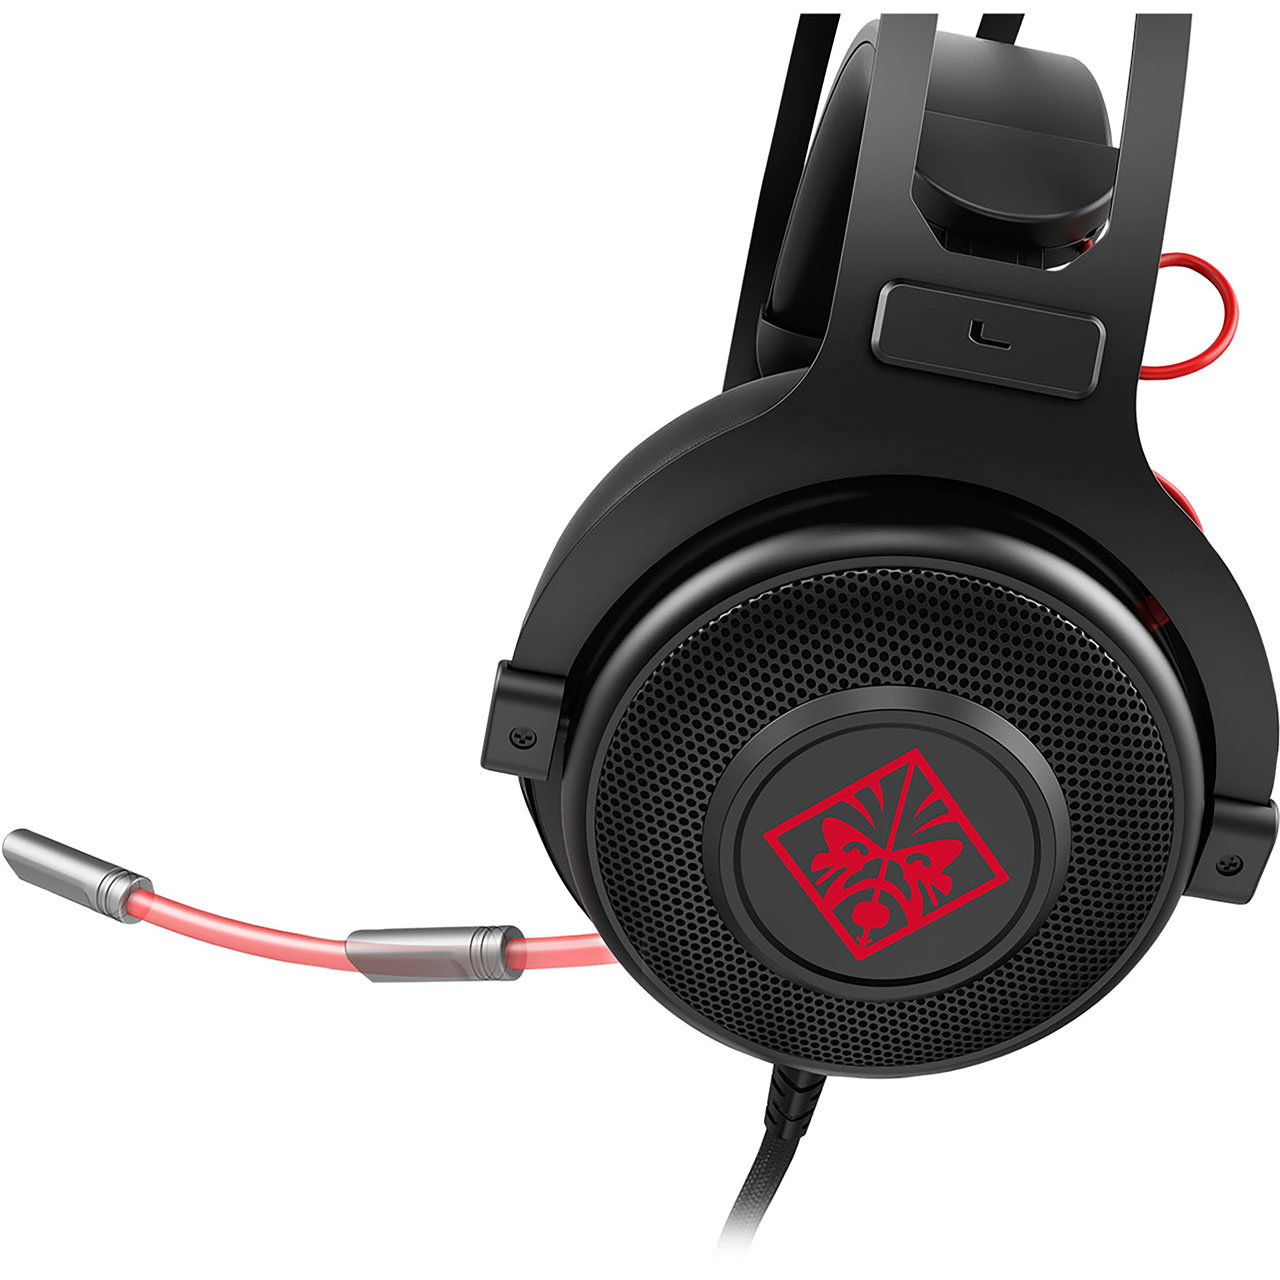 HP OMEN by HP 800 Gaming Headset